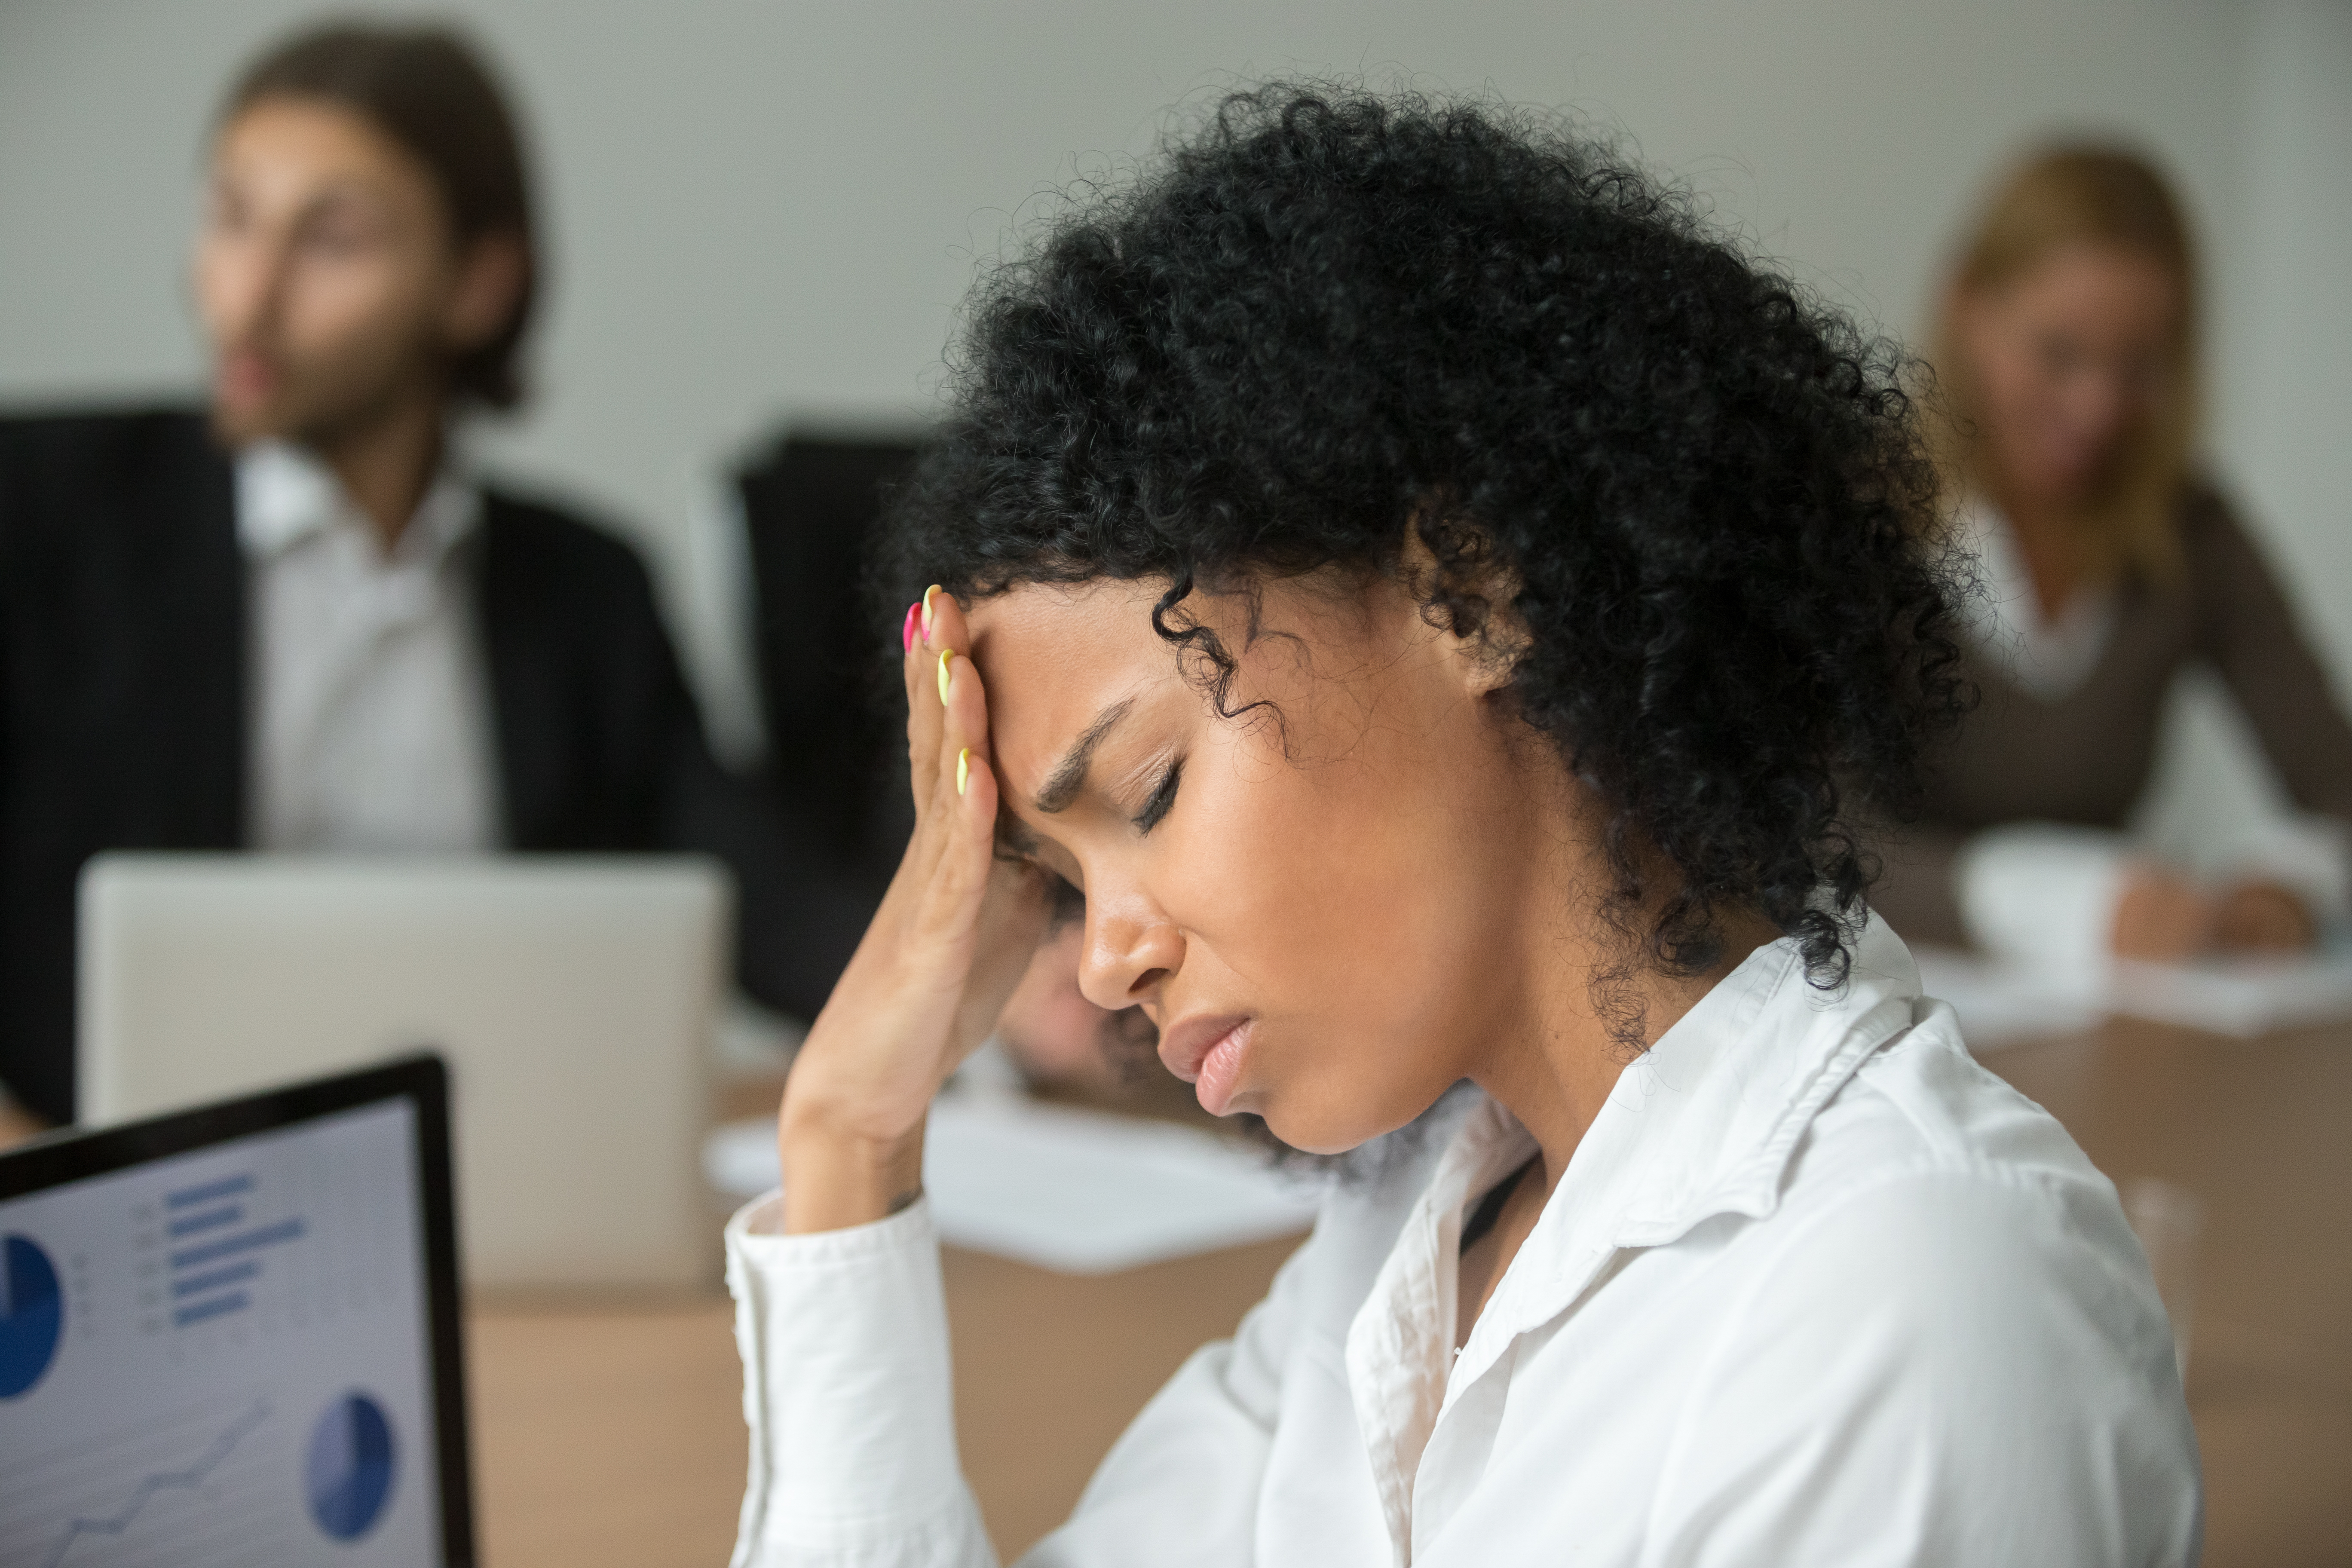 Woman feeling stressed and burnt out at work.